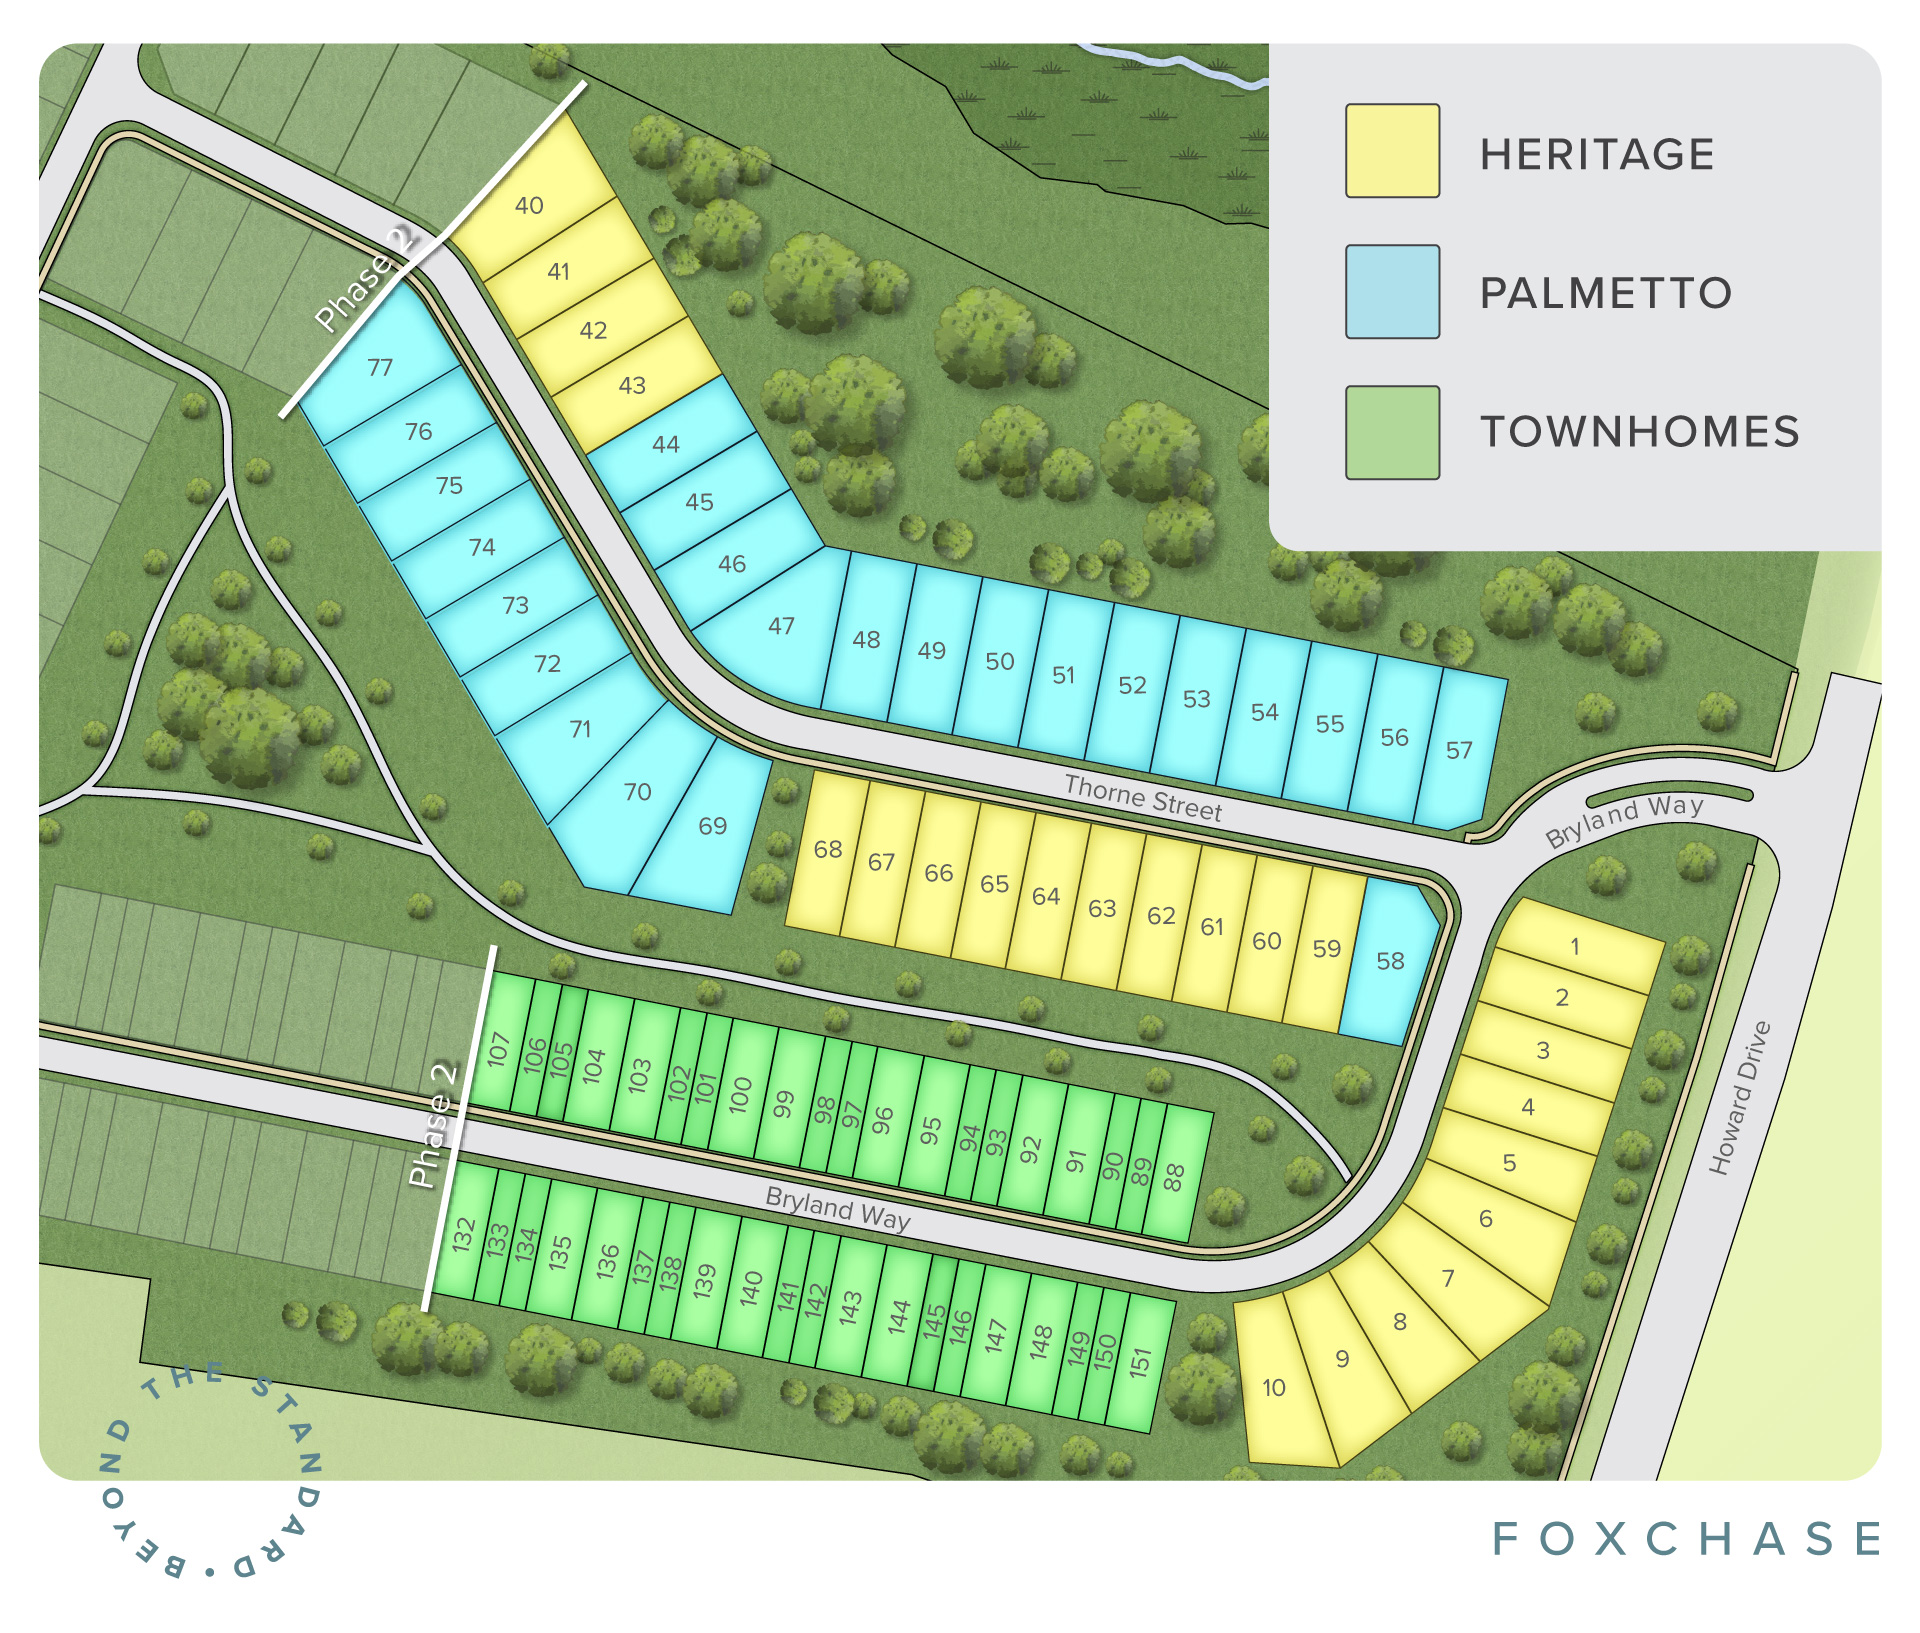 Fountain Inn, SC Foxchase New Homes